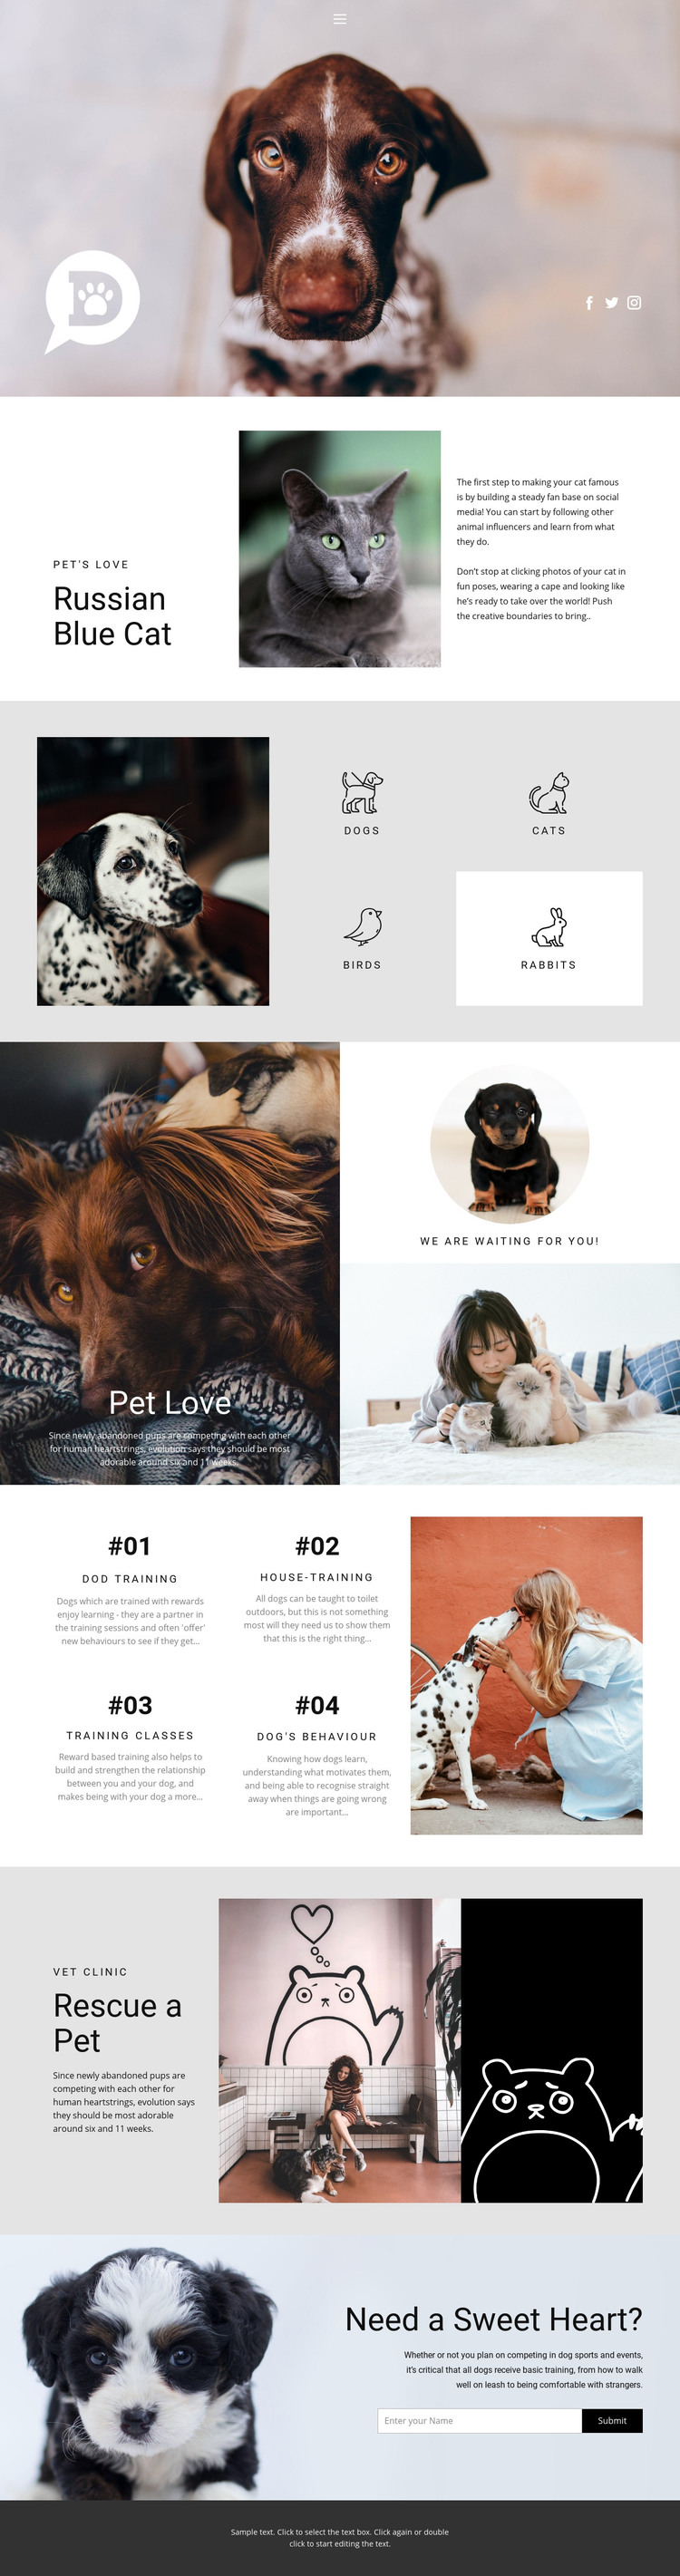 Care for pets and animals Homepage Design